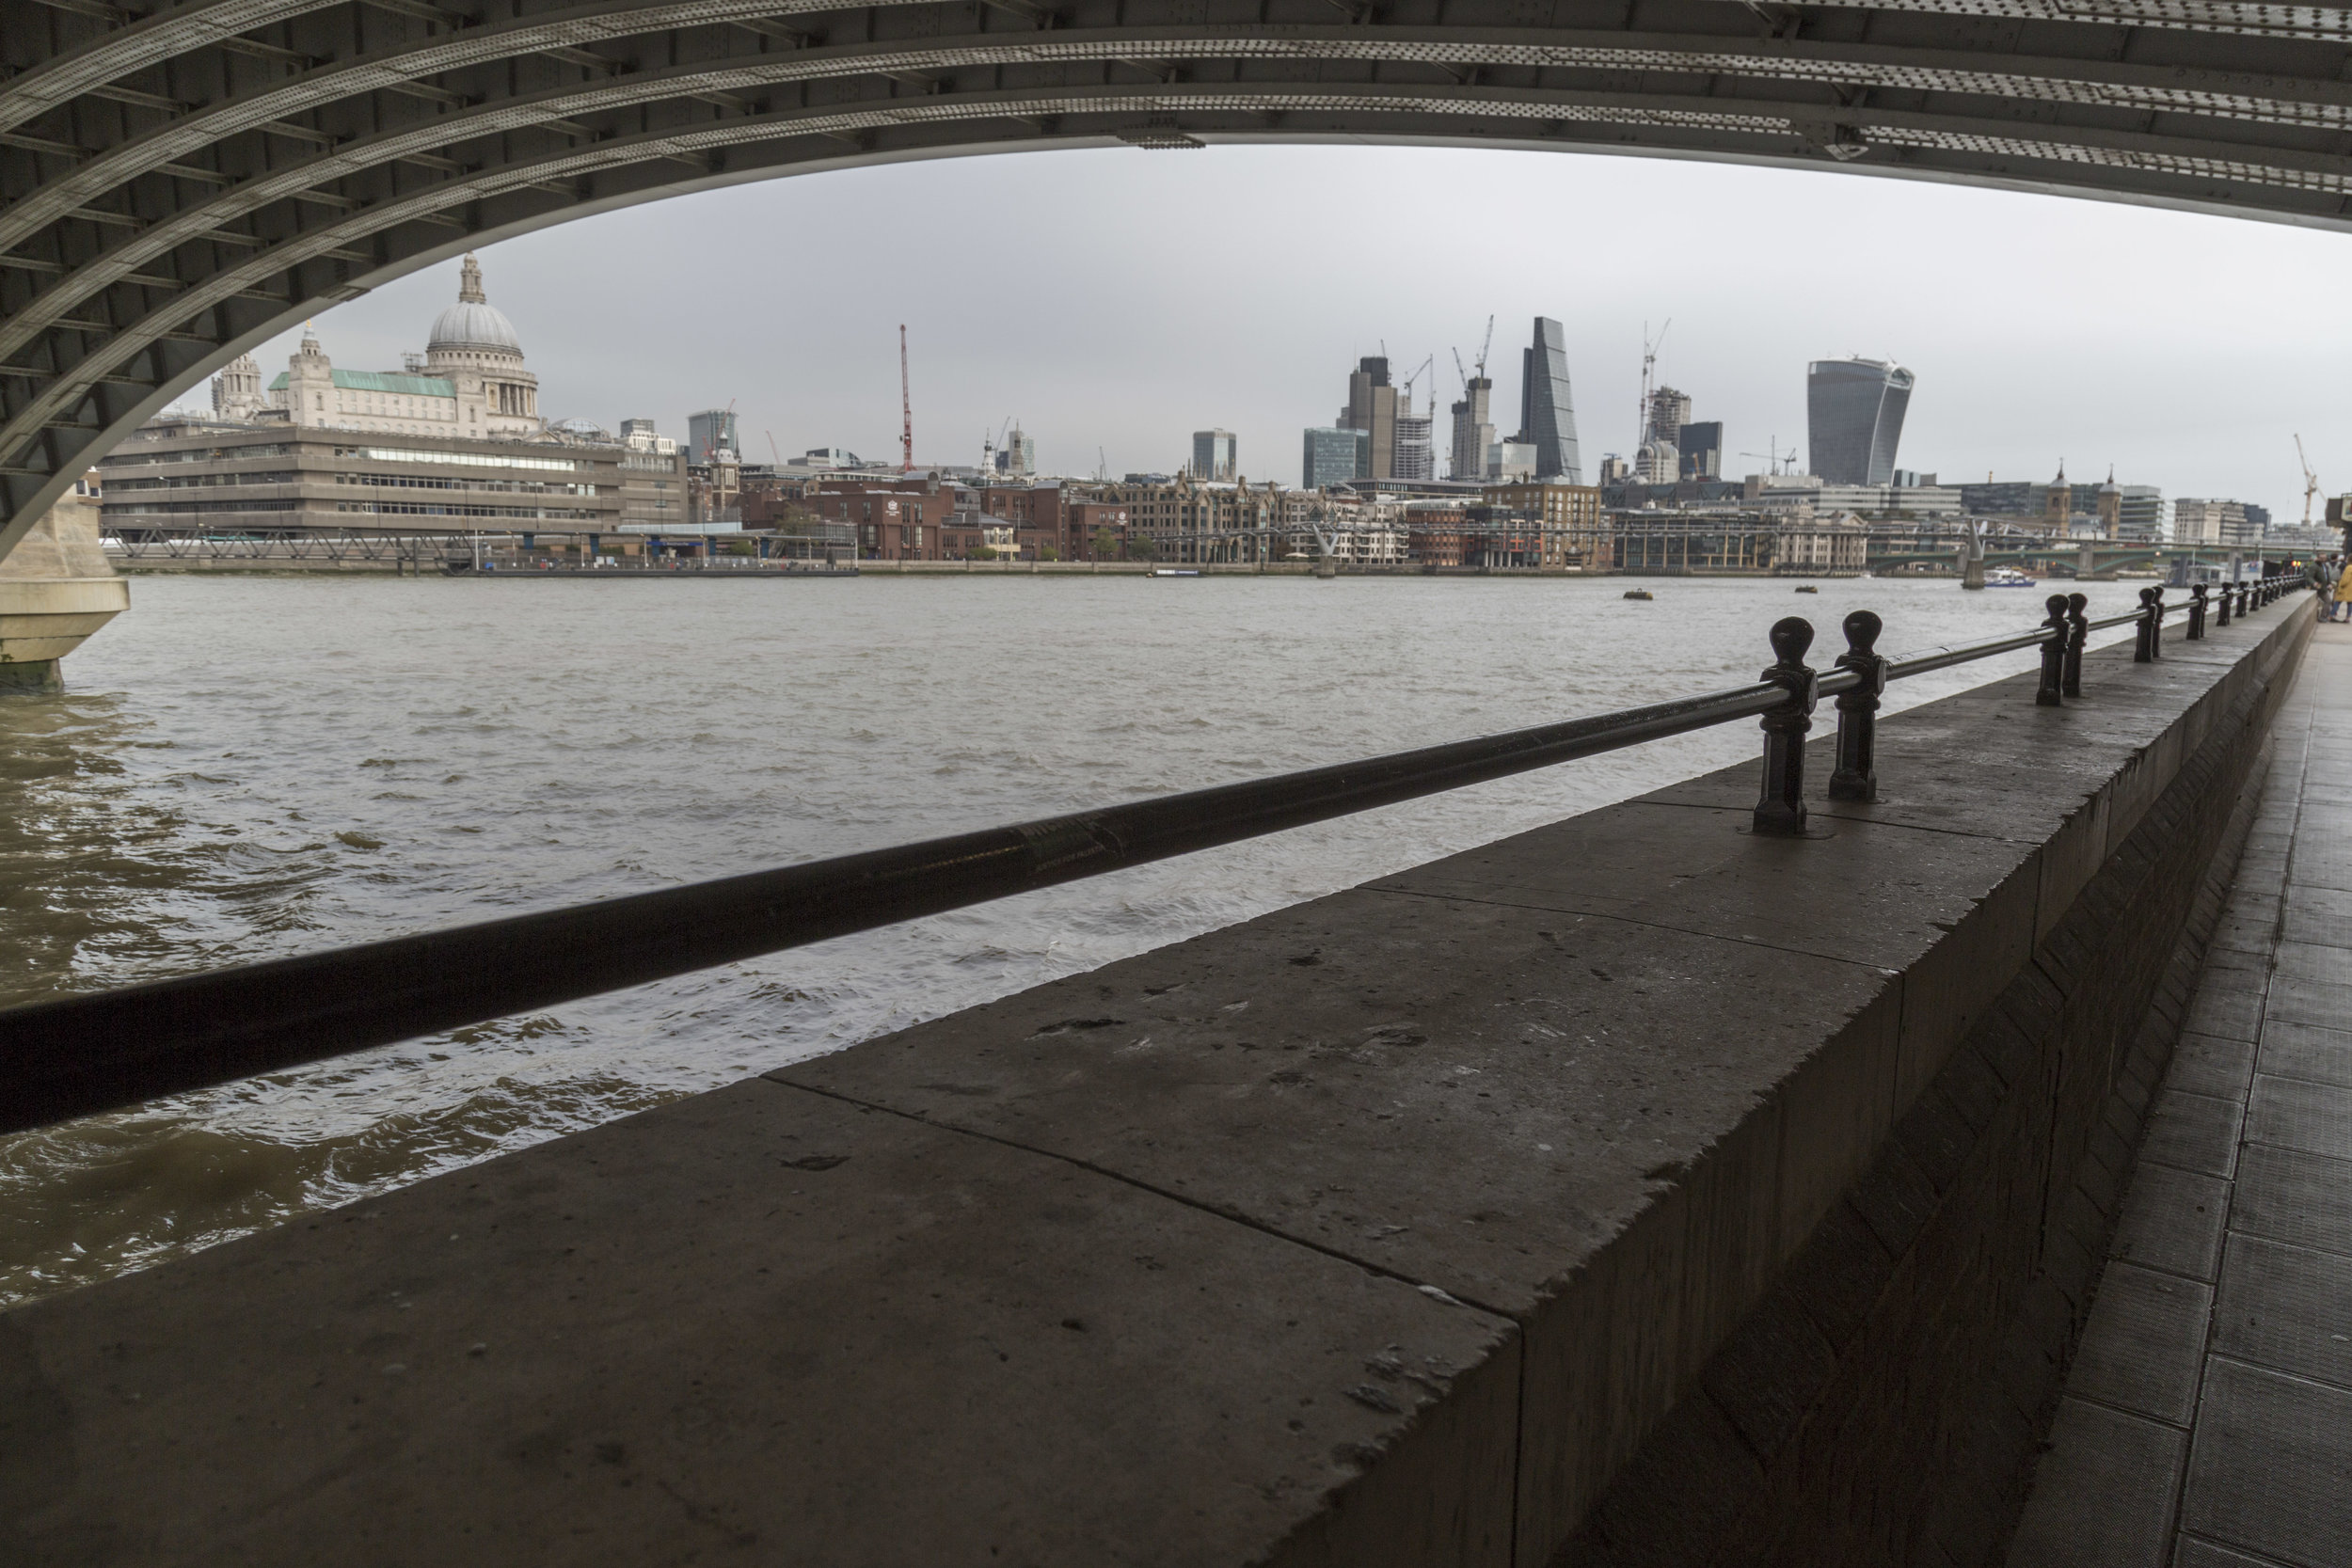 Southbank bridge view - references films shot on Southbank such as Four Weddings and a Funeral